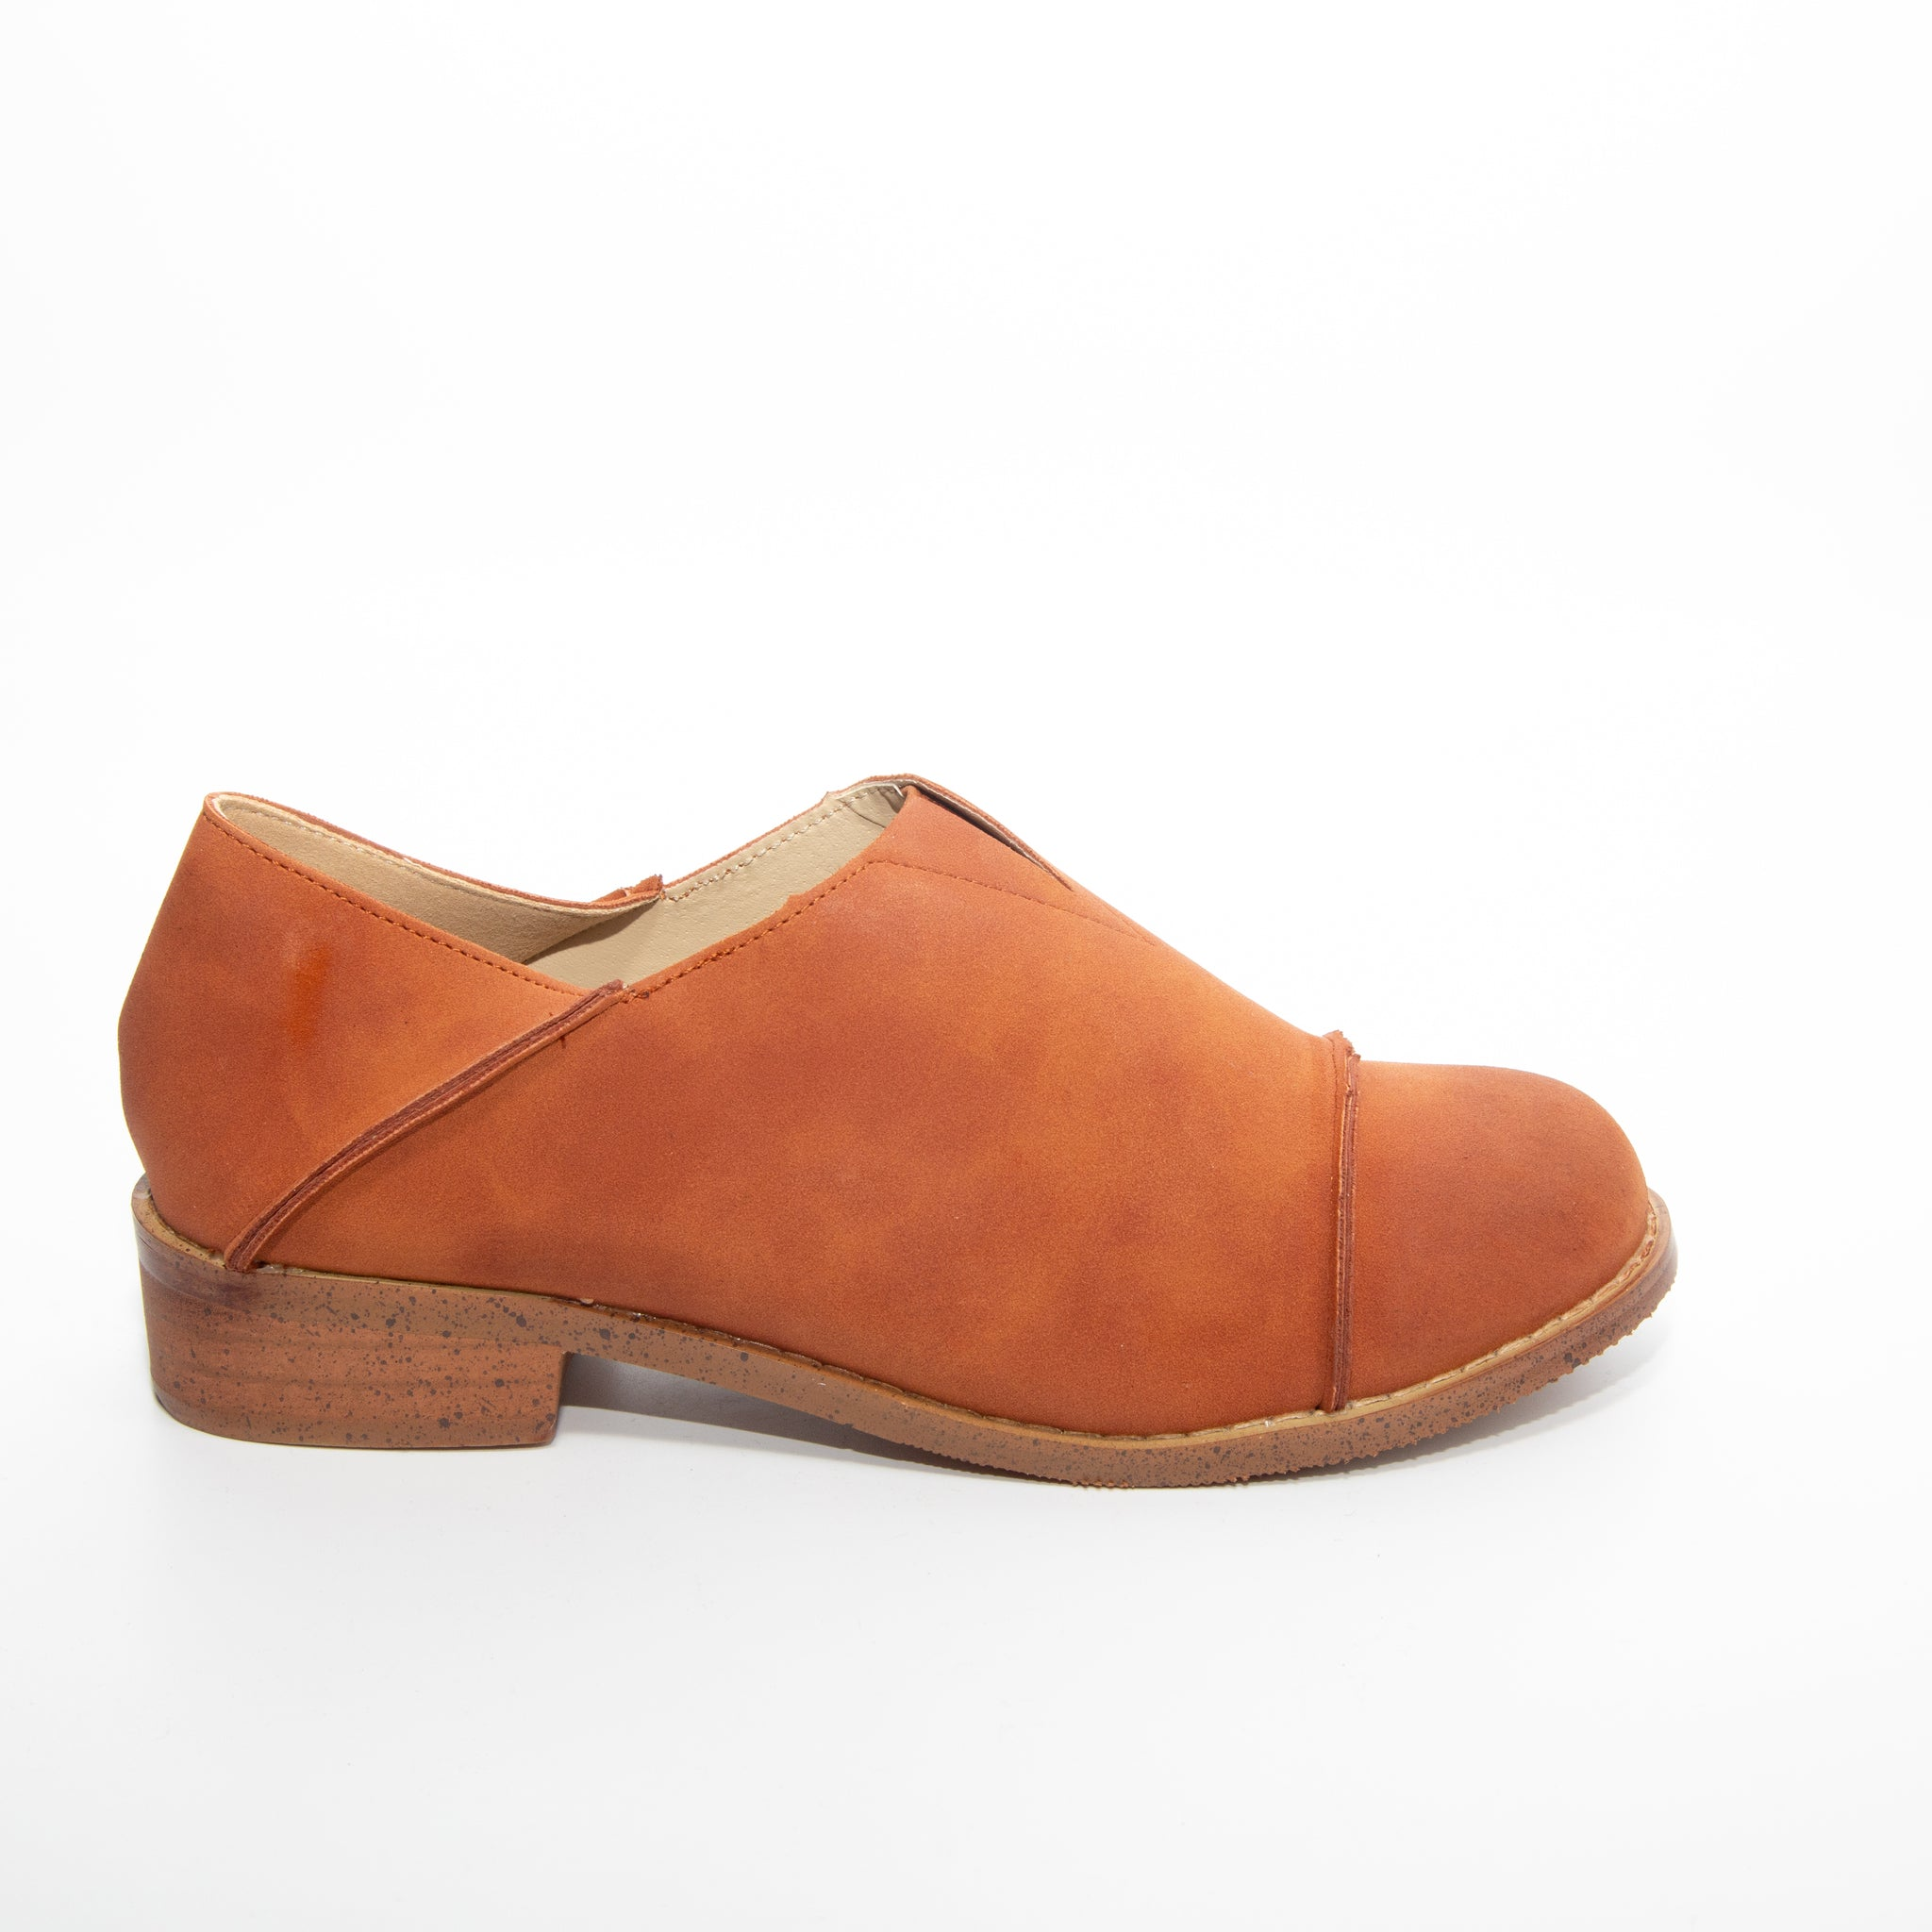 Diva by Dolce Nome | Slip-On Oxford Loafers in Rust (side view)